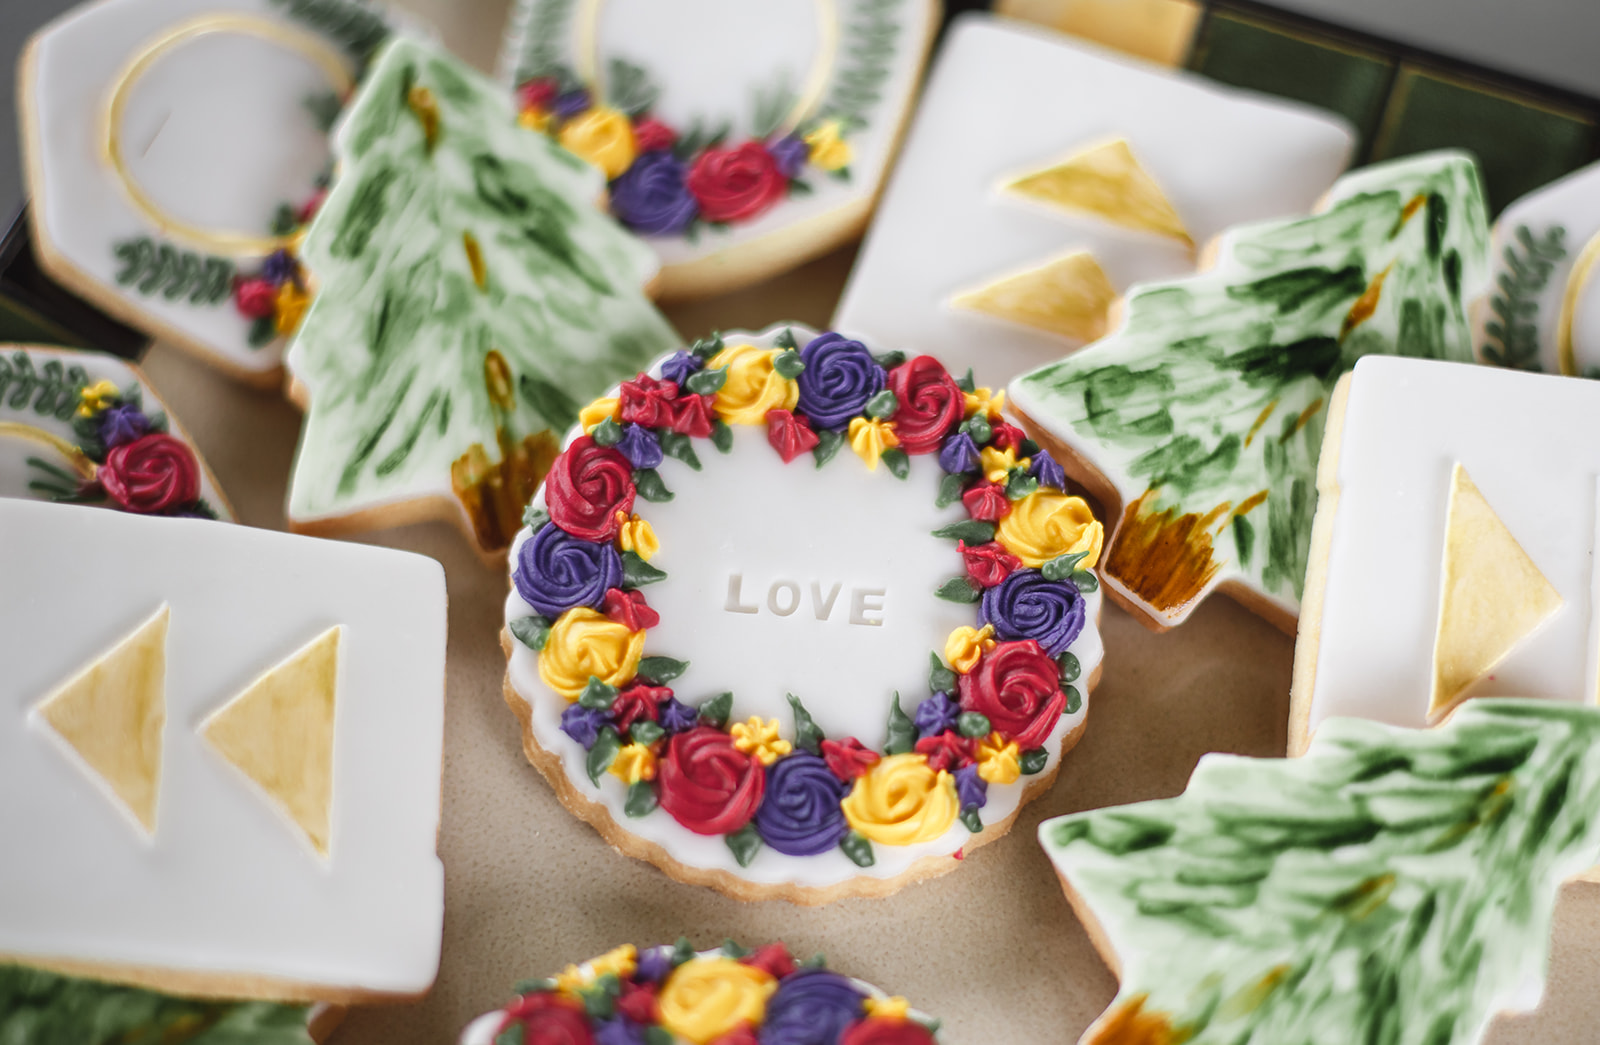 Cookies by  Marvellous Cakes